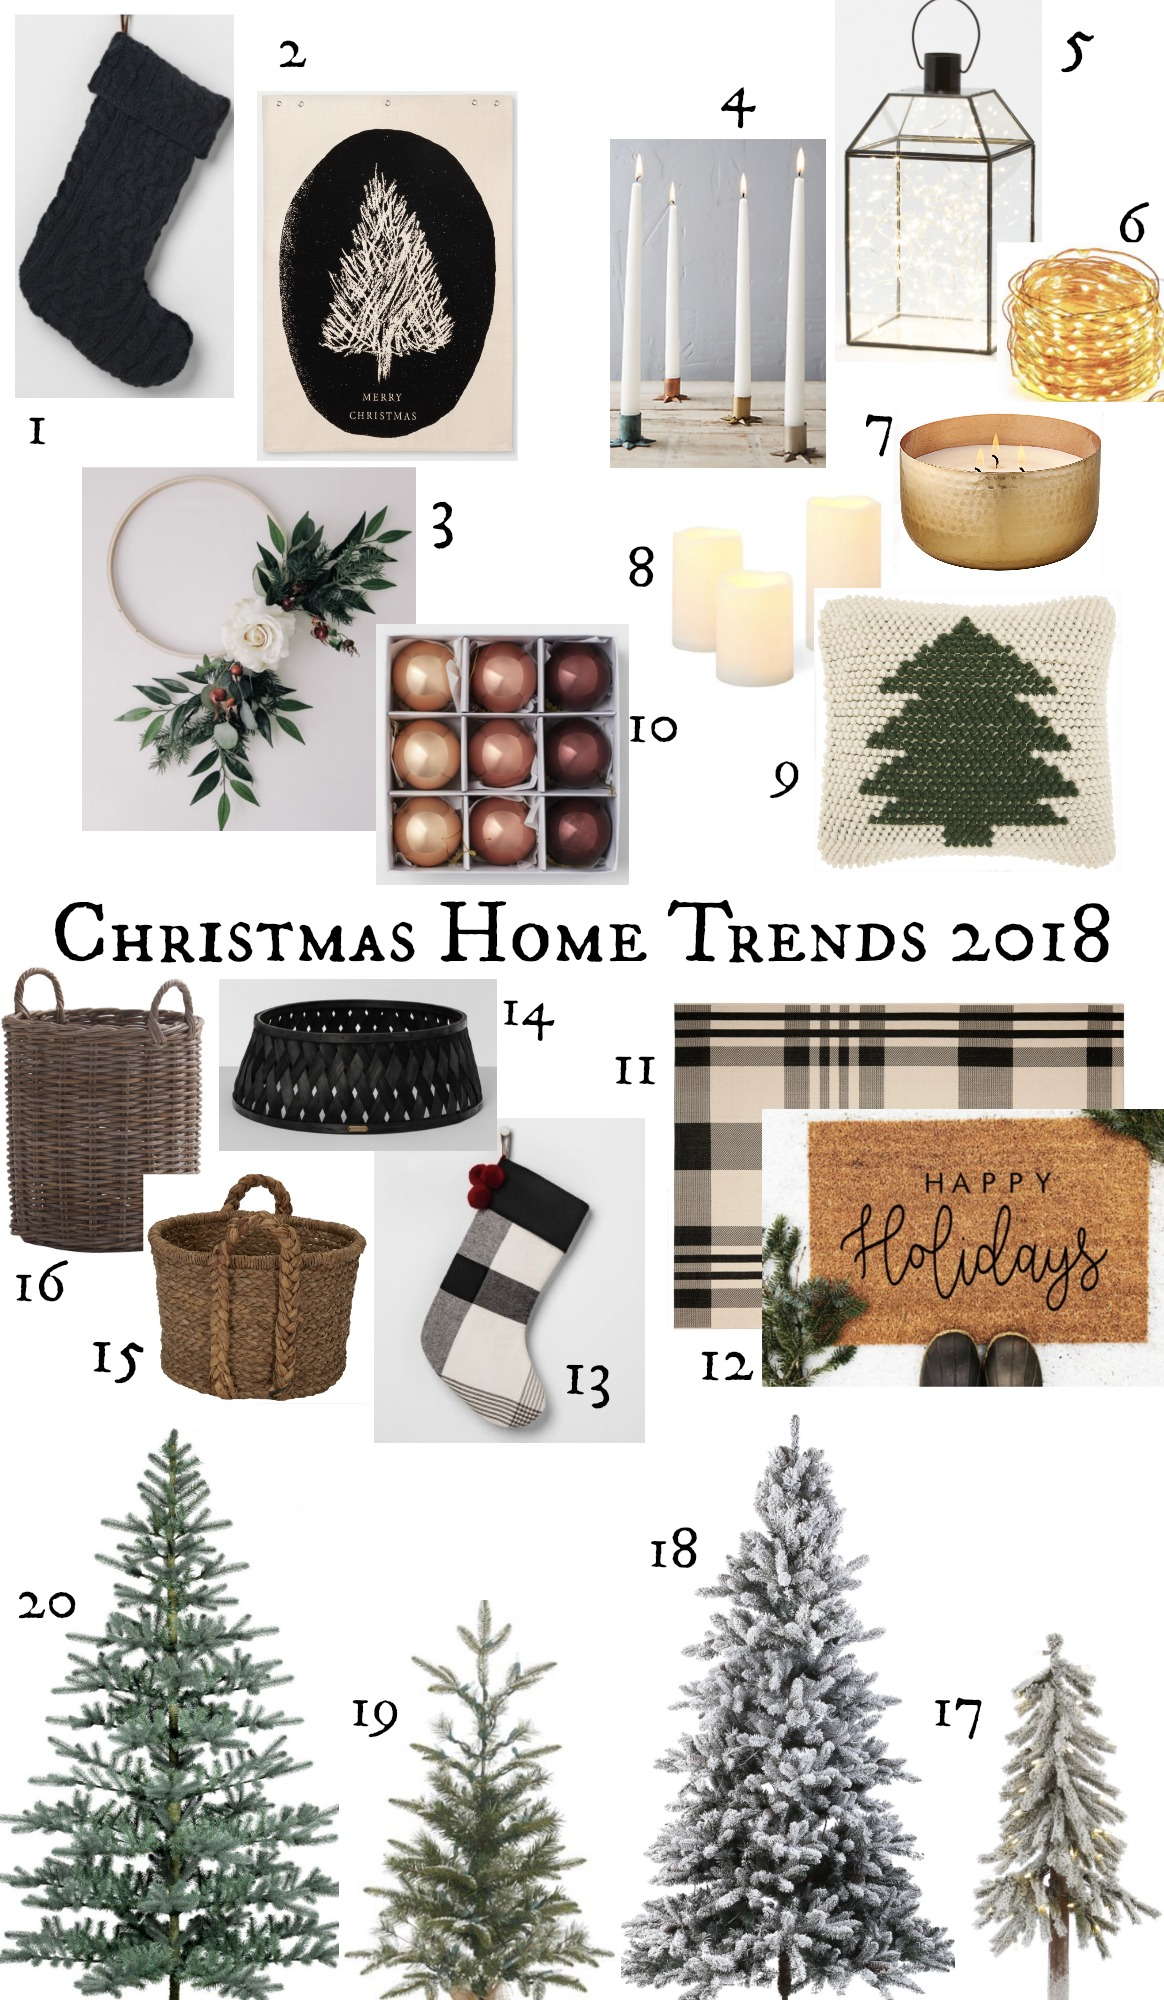 christmas home decor trends 2018 - Christmas Decor Trends 2018